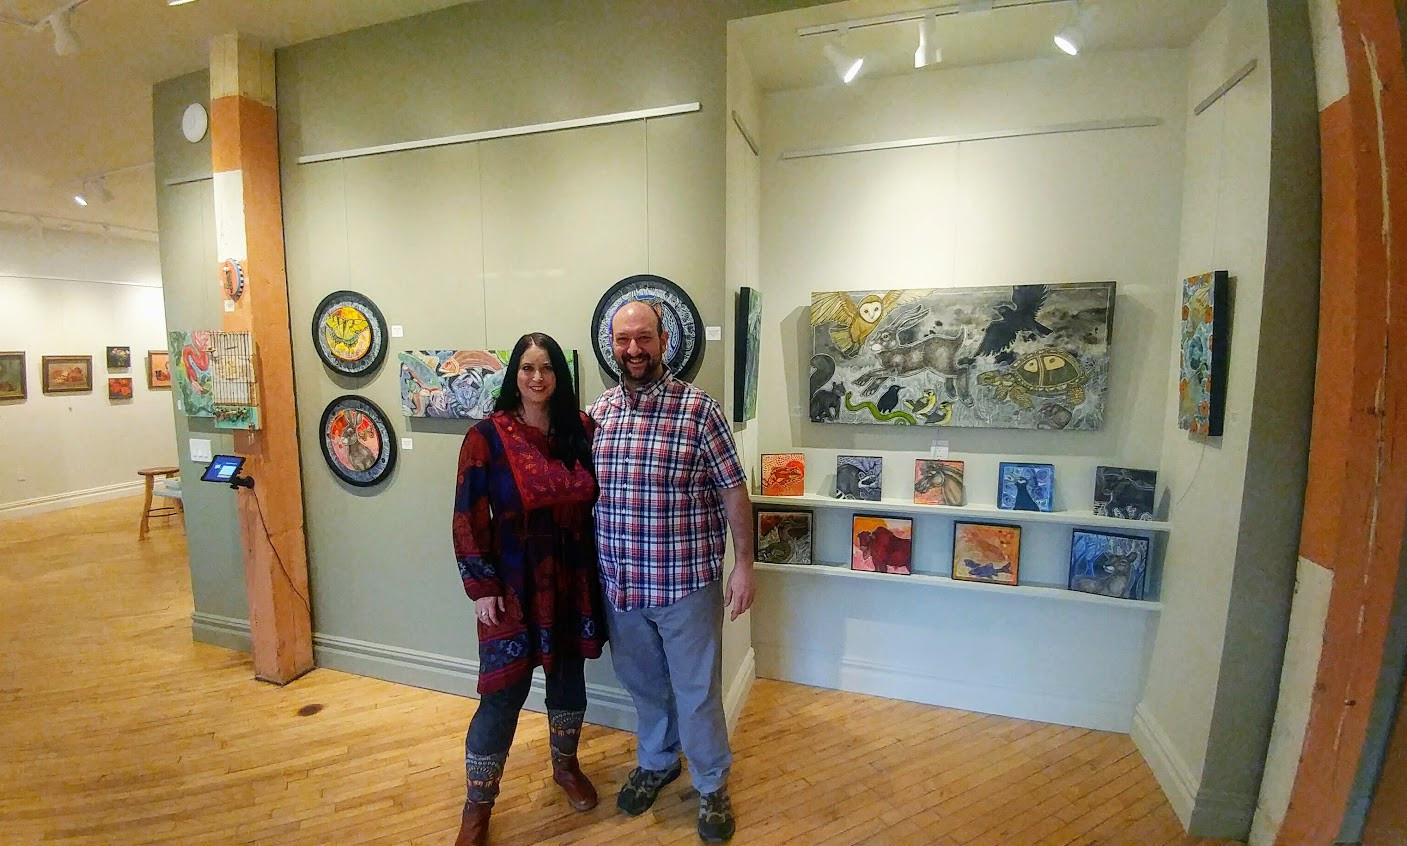 Artist Lynnette Shelley and Exhibit B owner and artist Harry Boardman